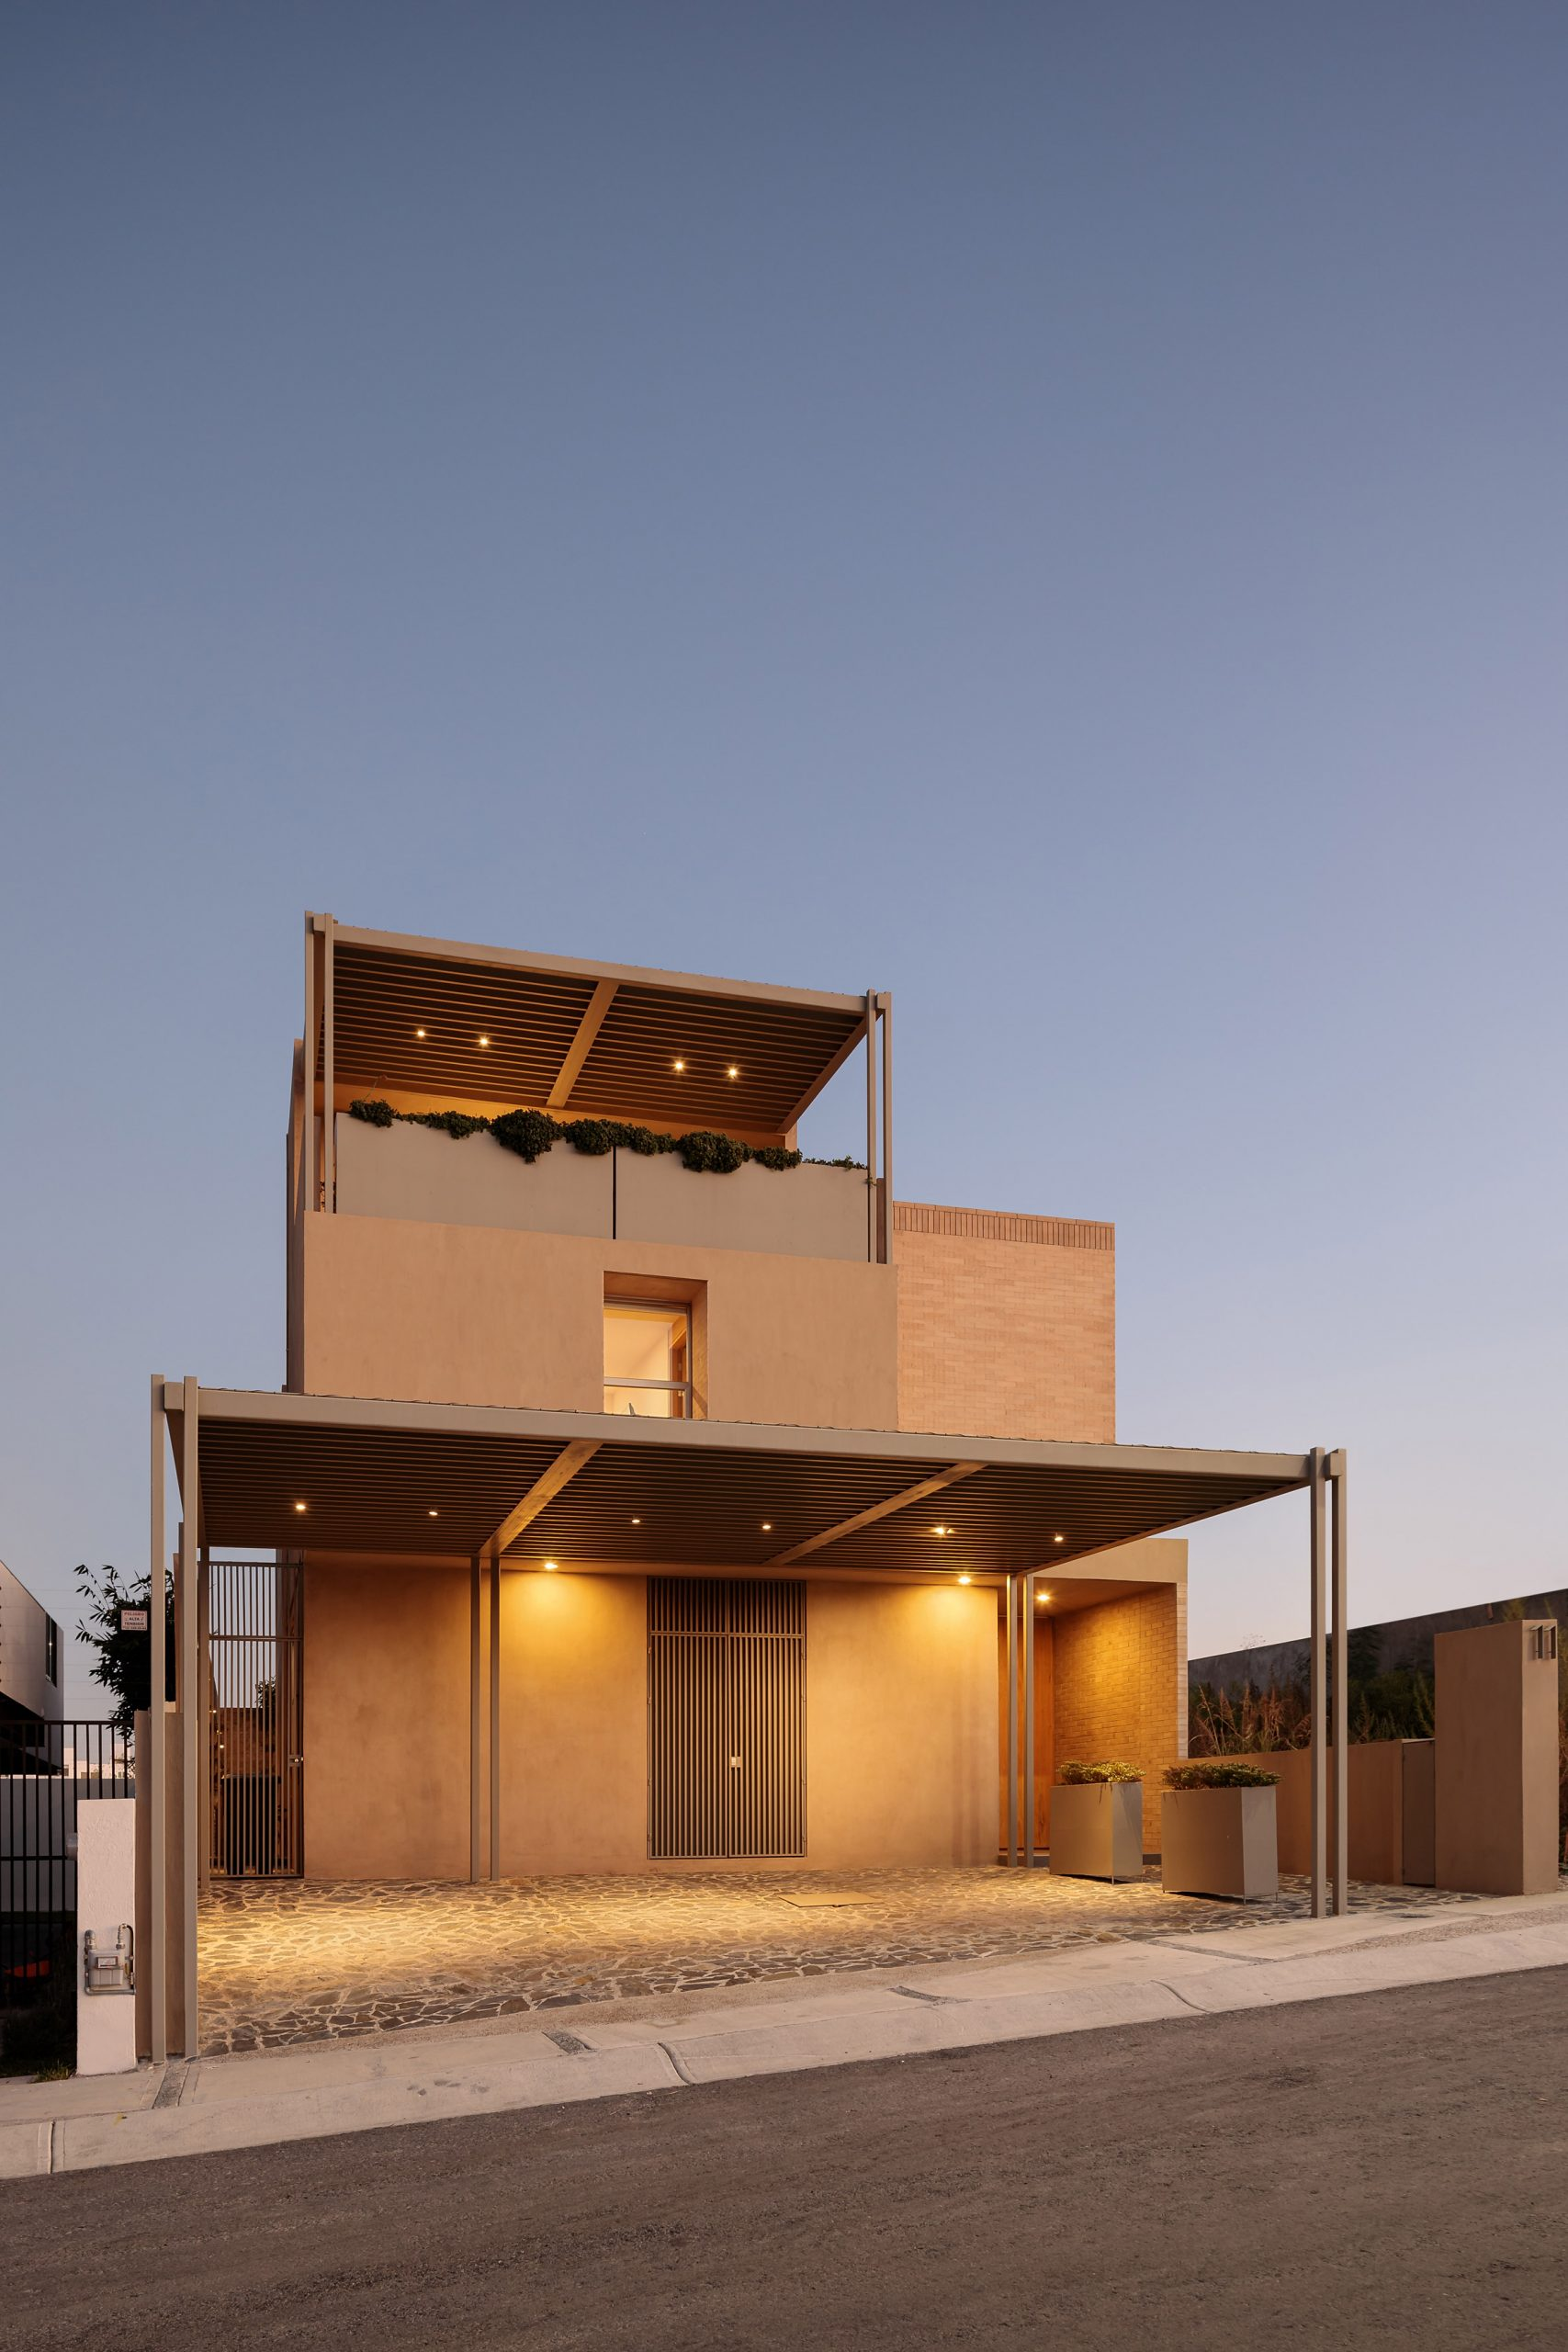 Exterior view of Casa Yavia by Intersticial Arquitectura